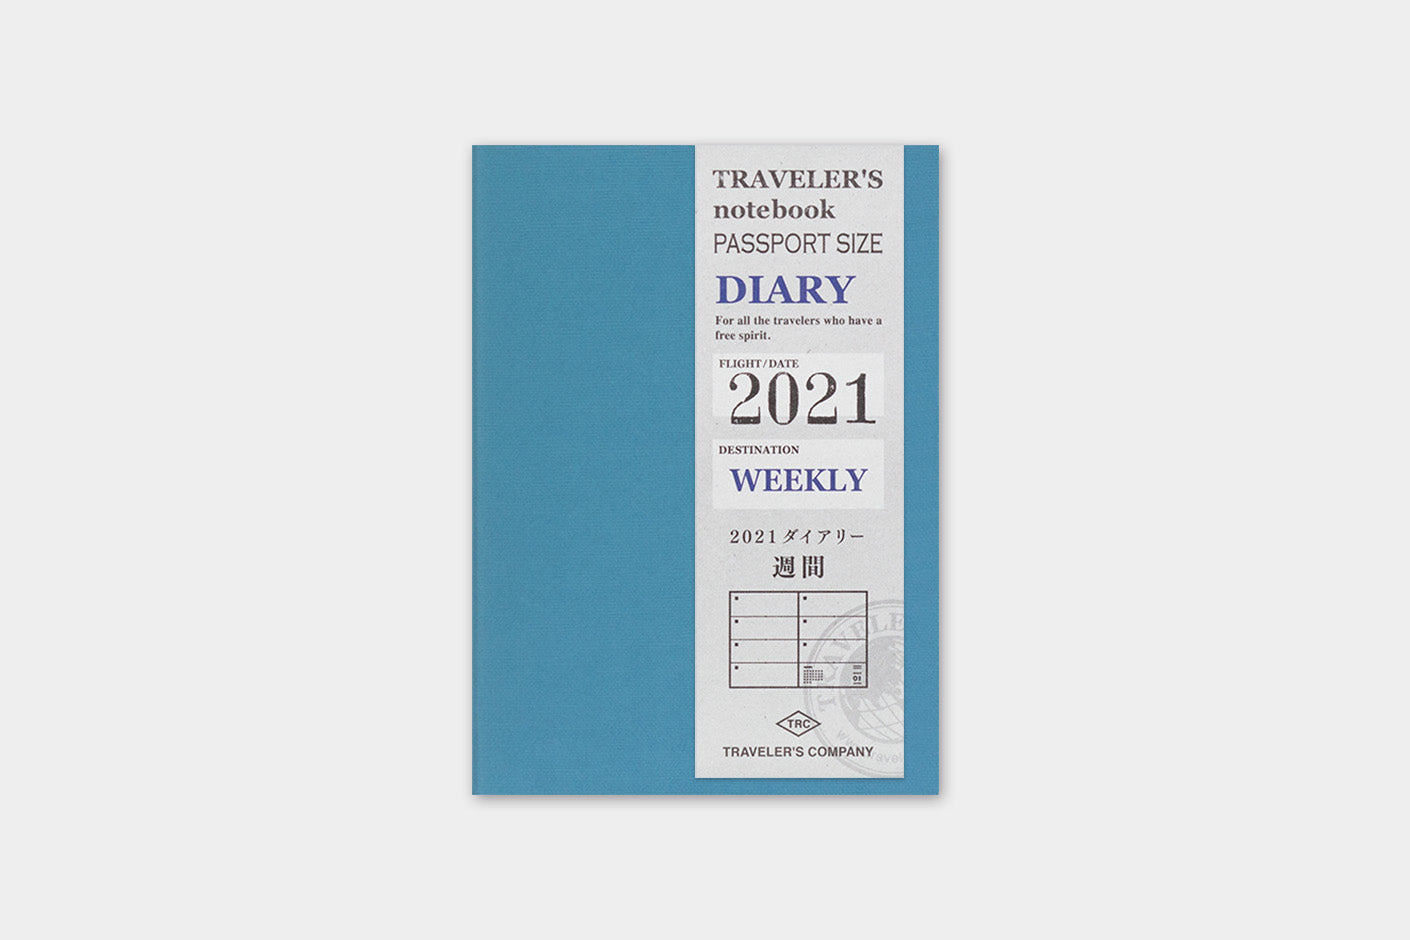 2021 Traveler's Notebook Diary (Passport Size) - Weekly PRE-ORDER.